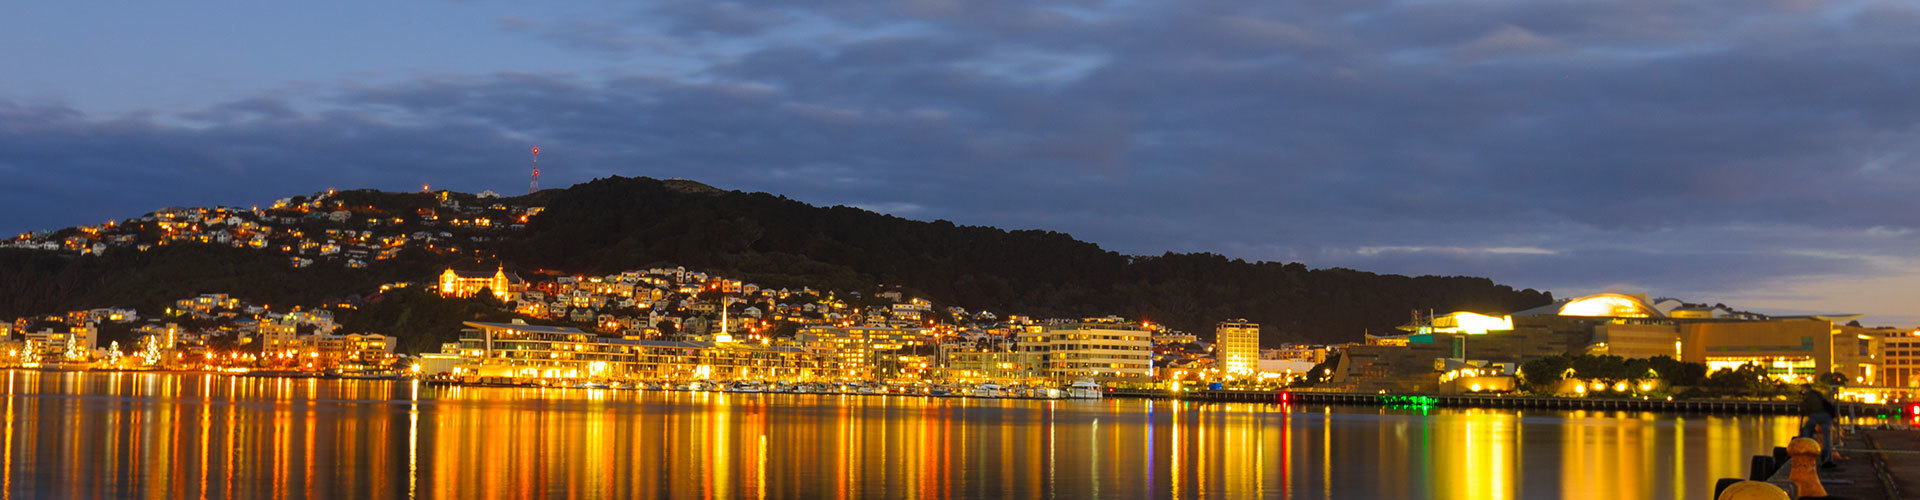 Wellington City Skyline and harbour at dusk